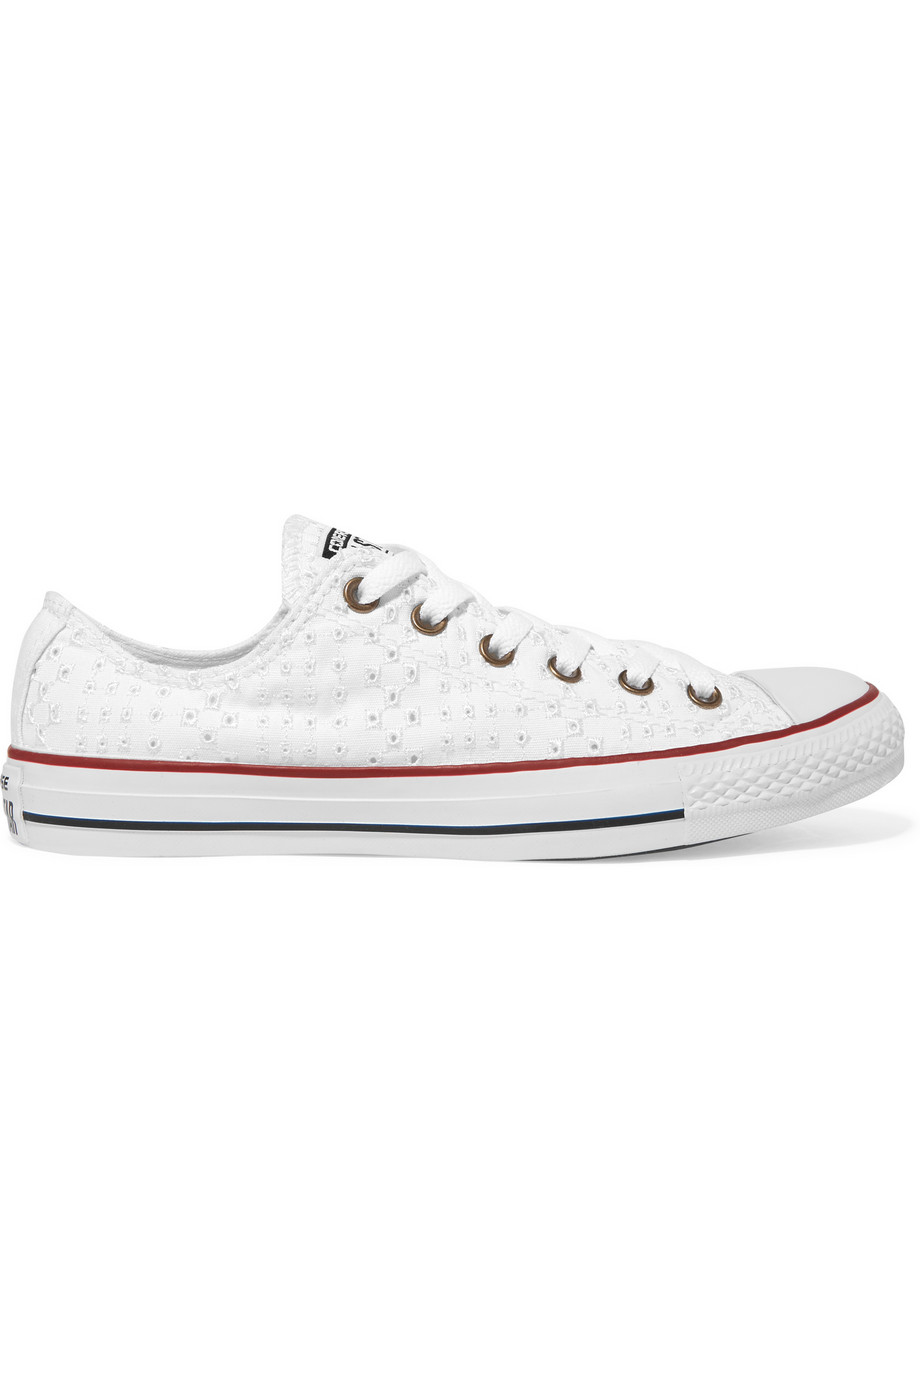 8226be8b70f Converse Chuck Taylor Broderie Anglaise Sneakers in White - Lyst